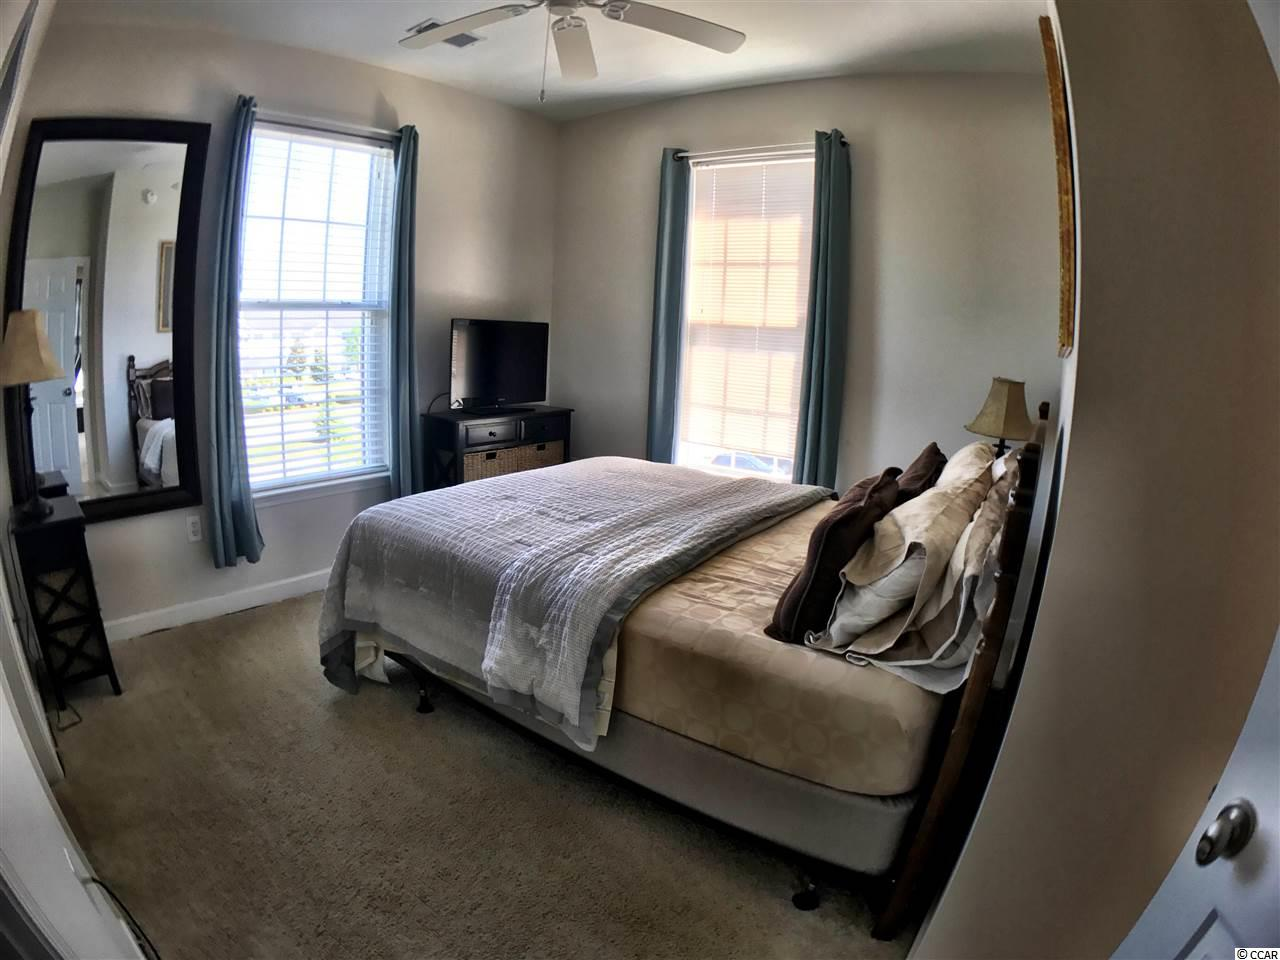 St. James Square - Myrtle Beach  condo now for sale